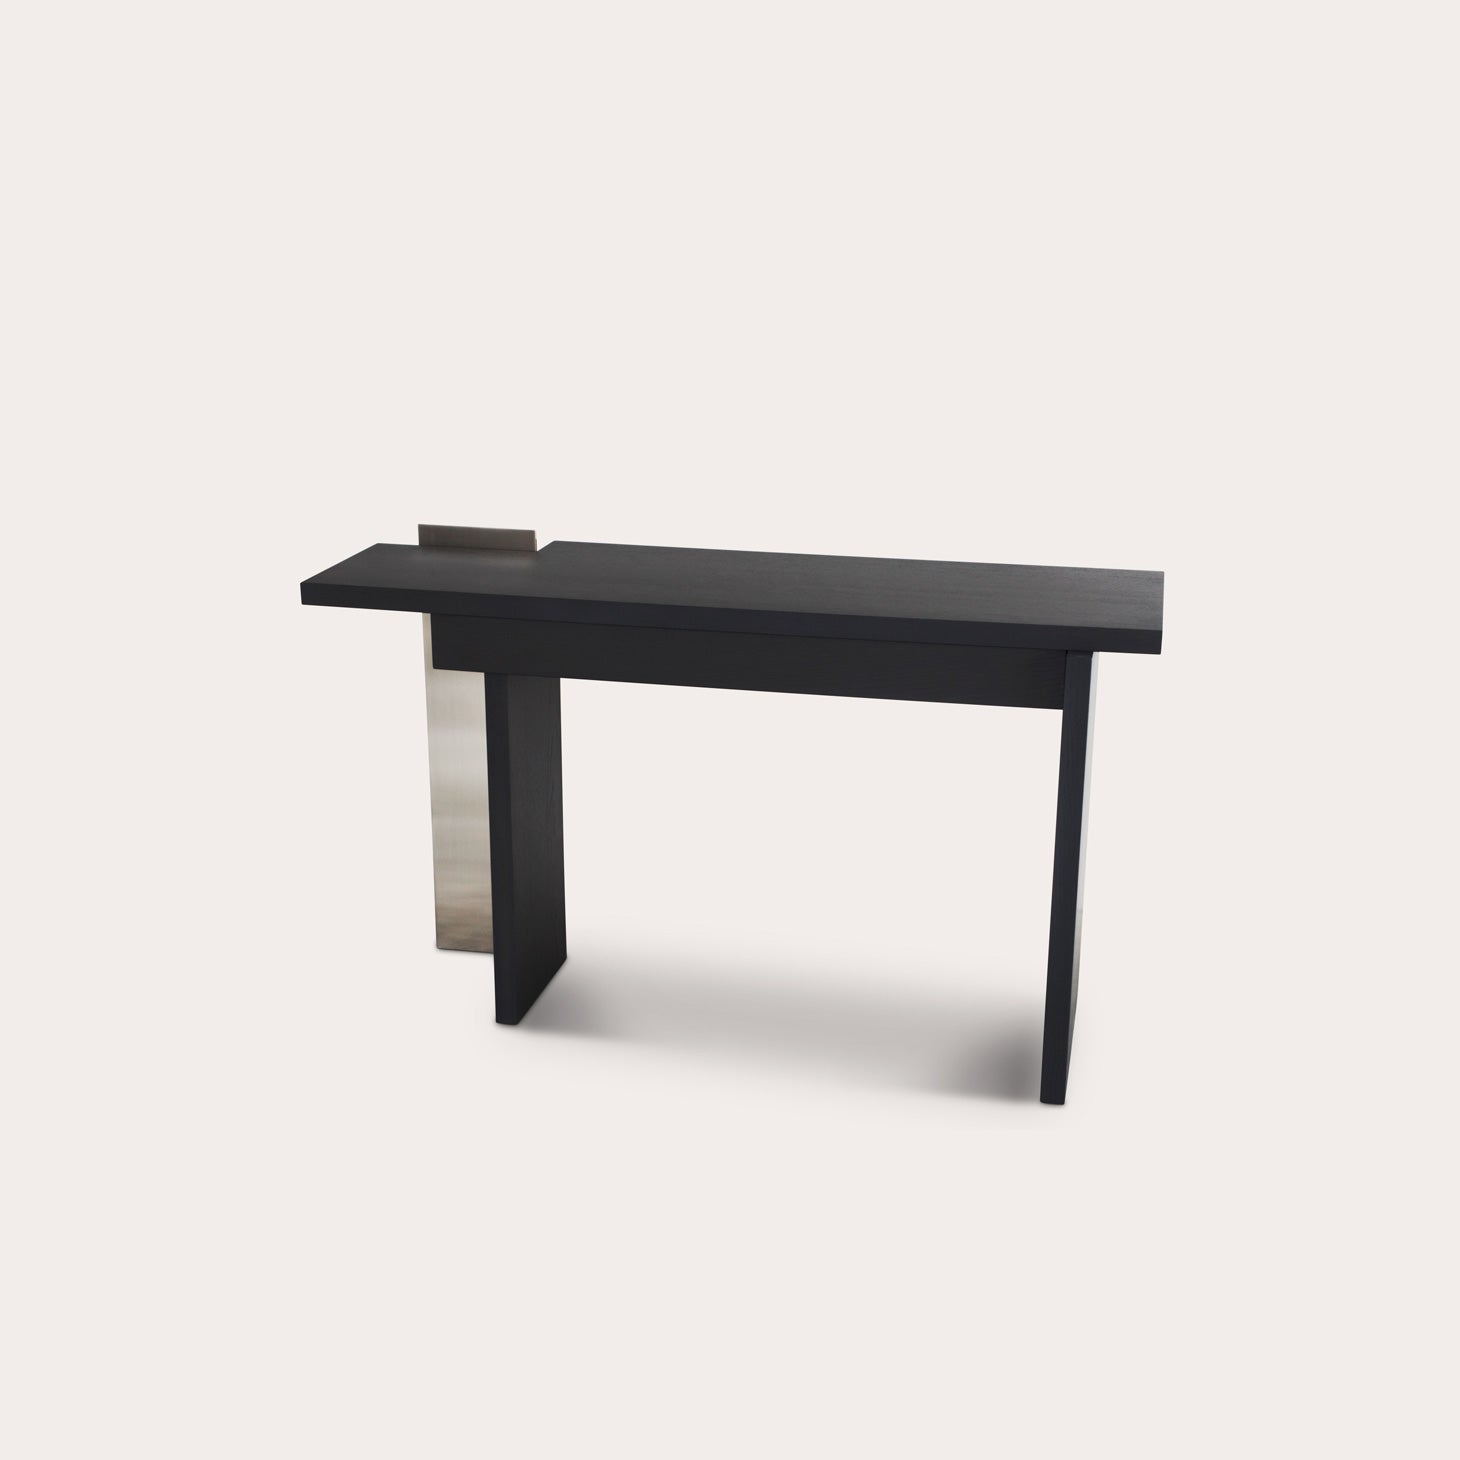 Stijl Tables Erjan Borren Designer Furniture Sku: 416-220-10178